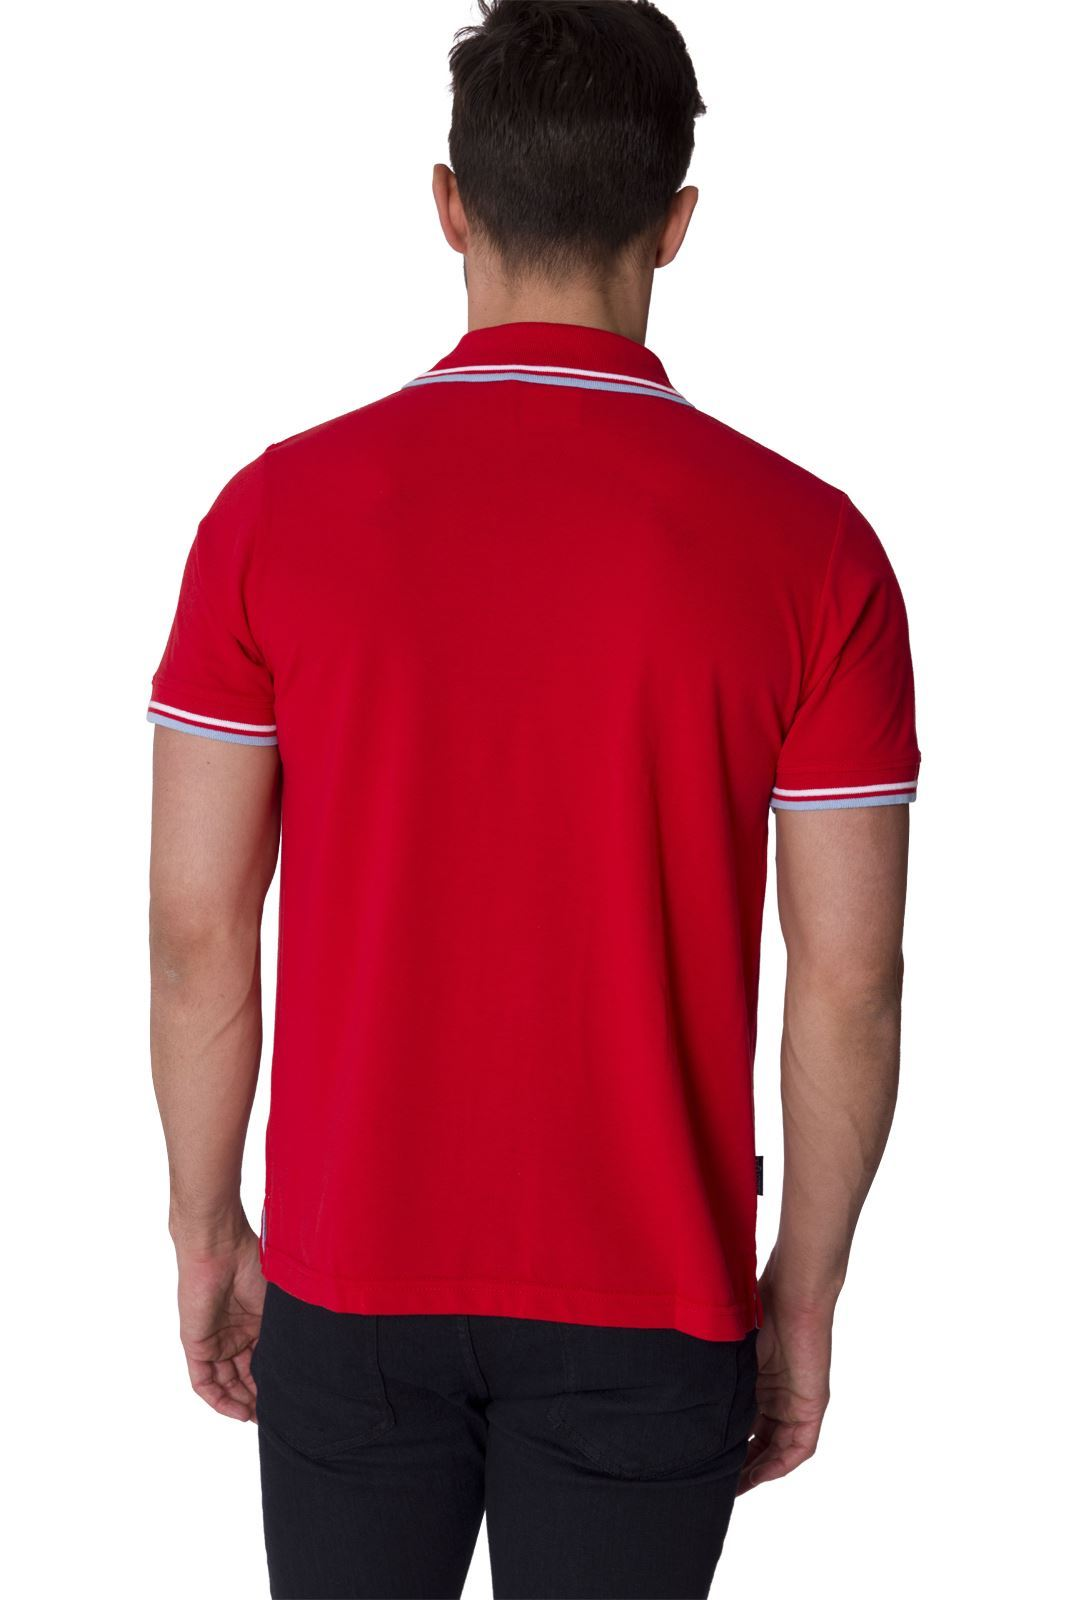 Slazenger Designer New Mens Short Sleeve Collared Polo Tee